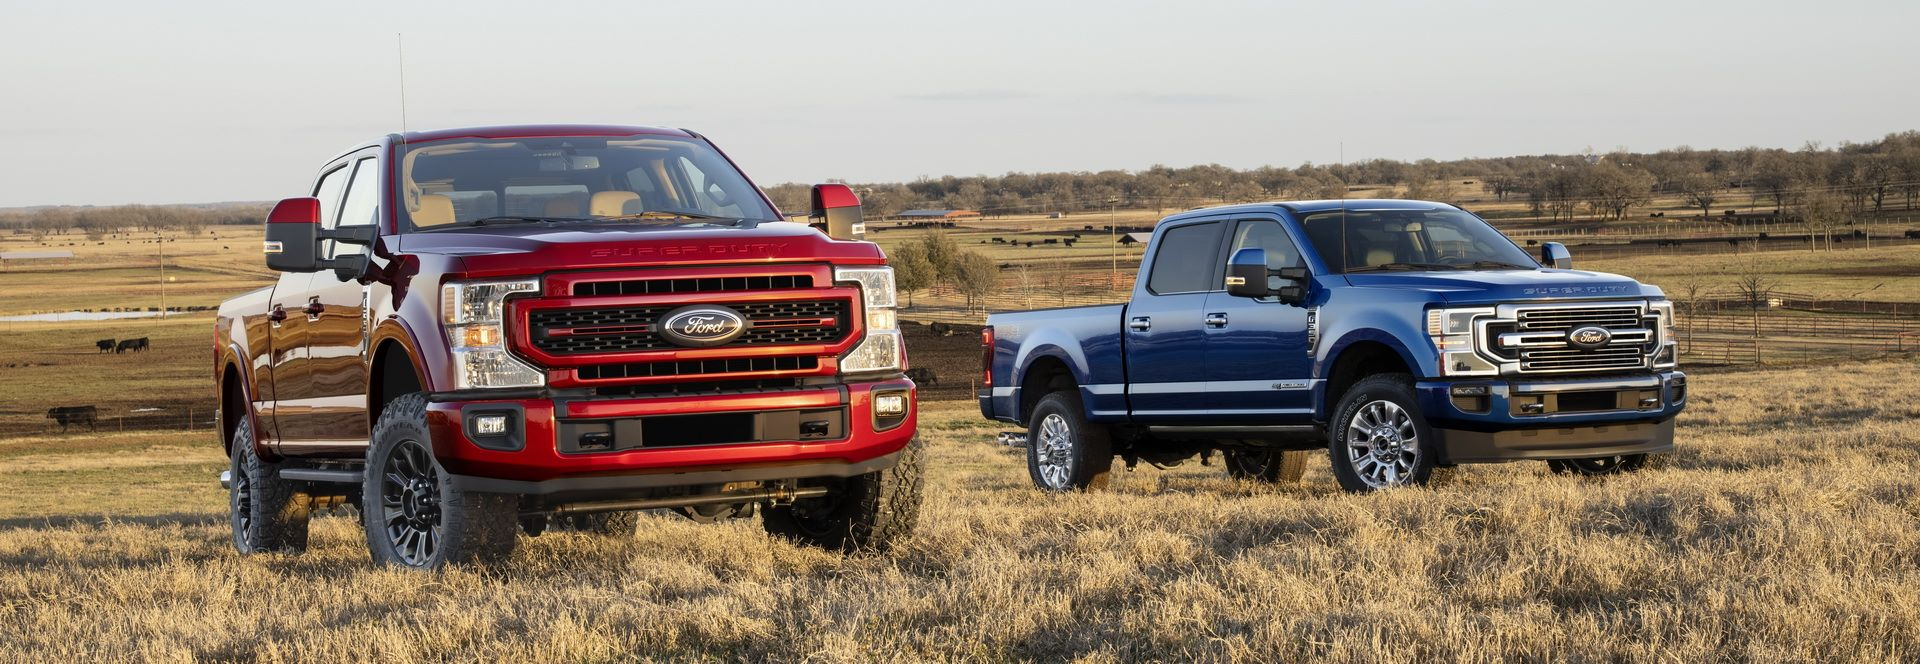 Ford-Super-Duty-2022-1